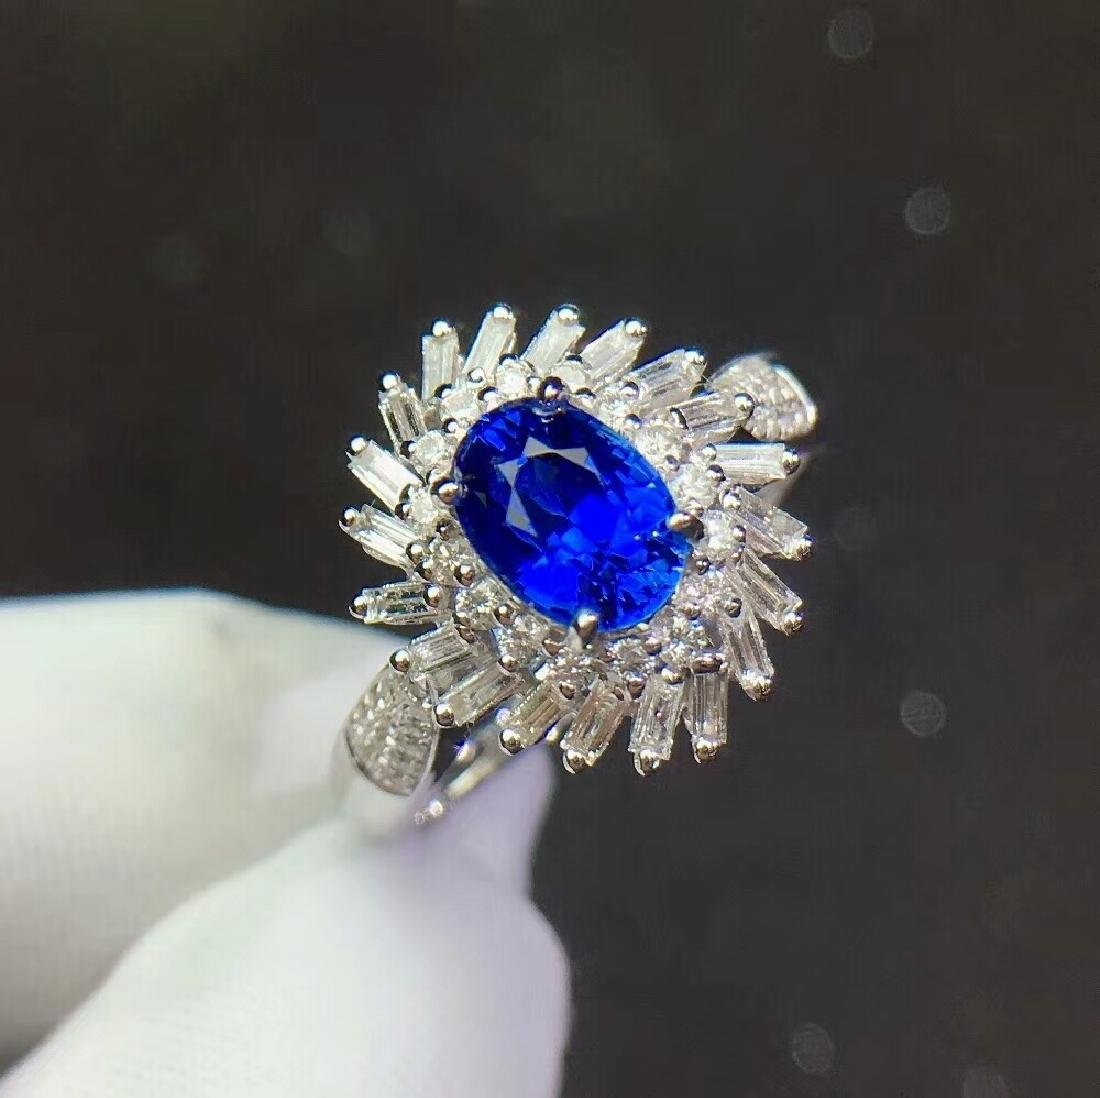 1.3ct Sapphire Ring in 18kt White Gold - 2